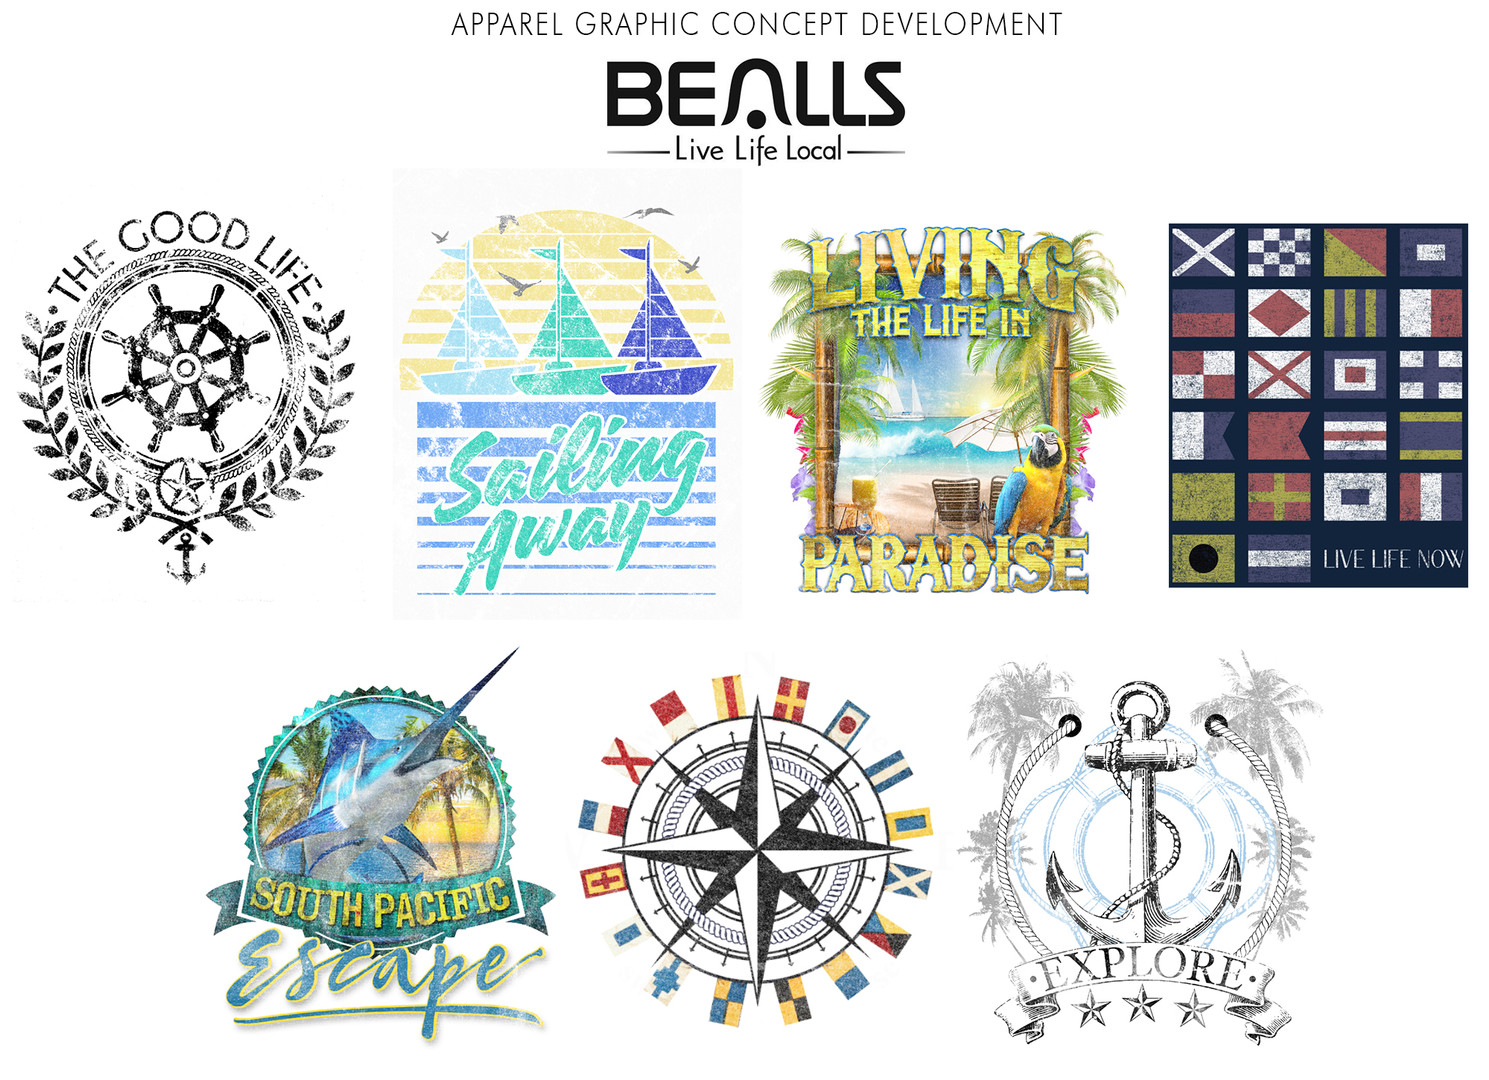 Apparel graphic concept development for Bealls.